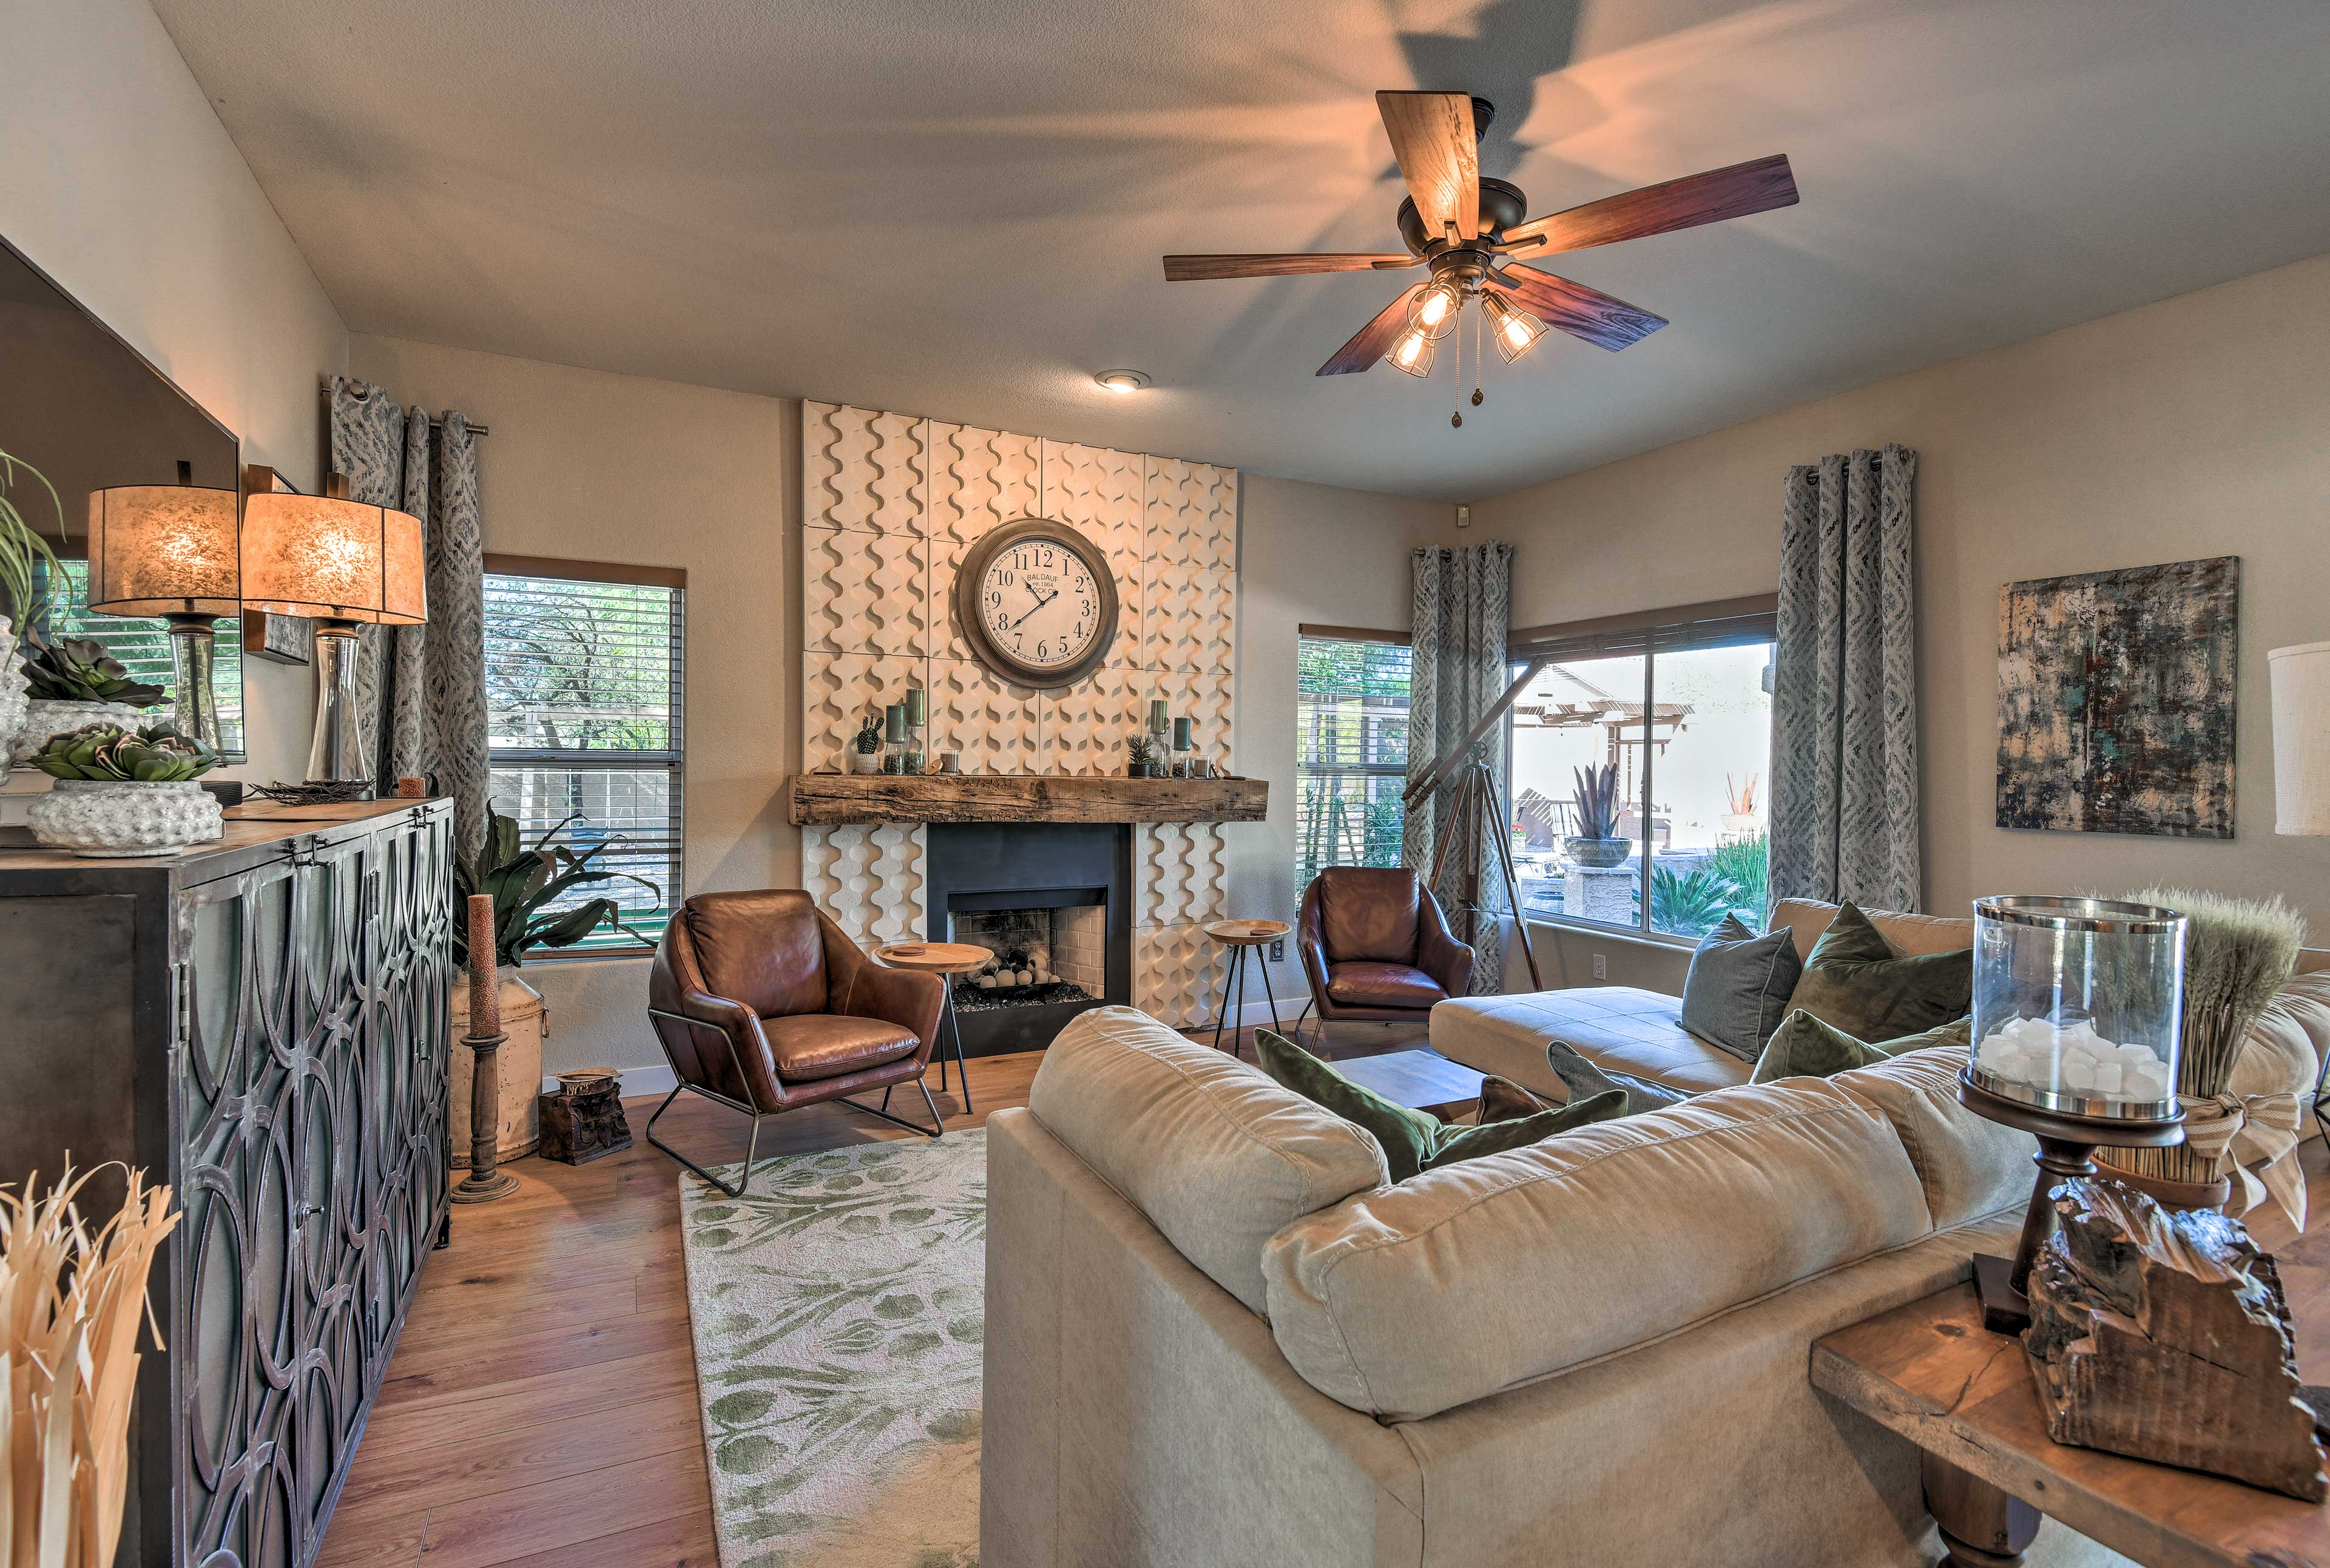 There are 2 living areas, so everyone has a place to sit and relax!